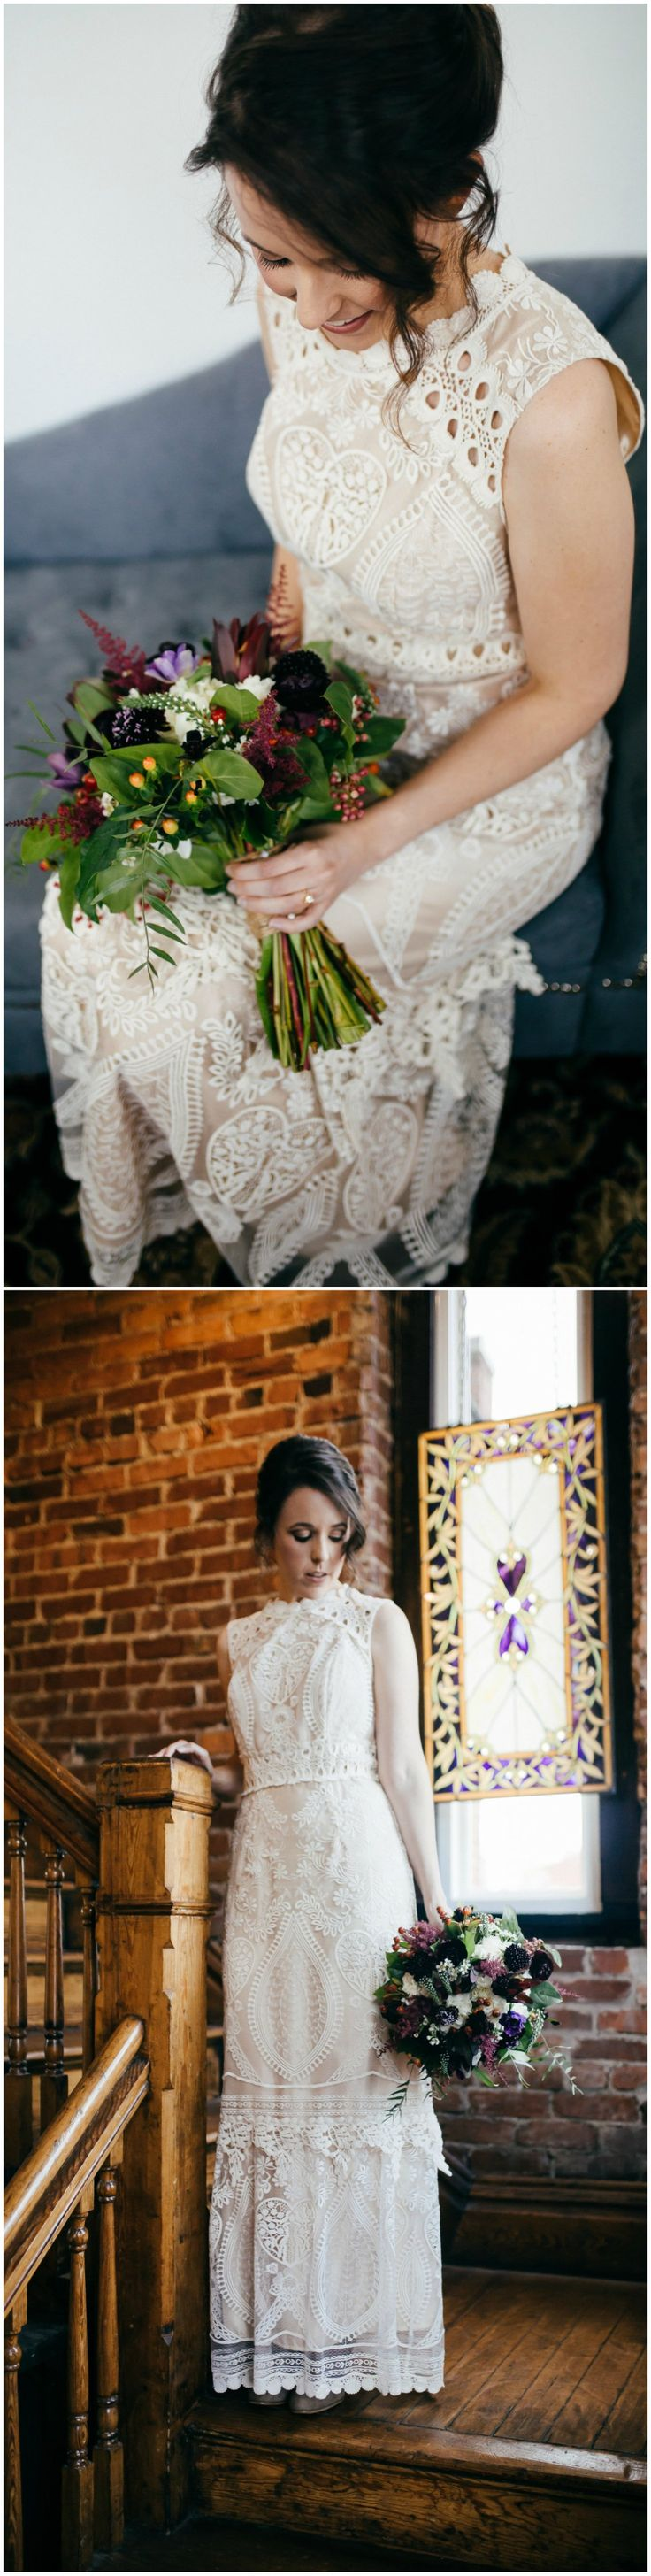 Simple Rustic Fall Wedding at The Church on Main Chattanooga TN